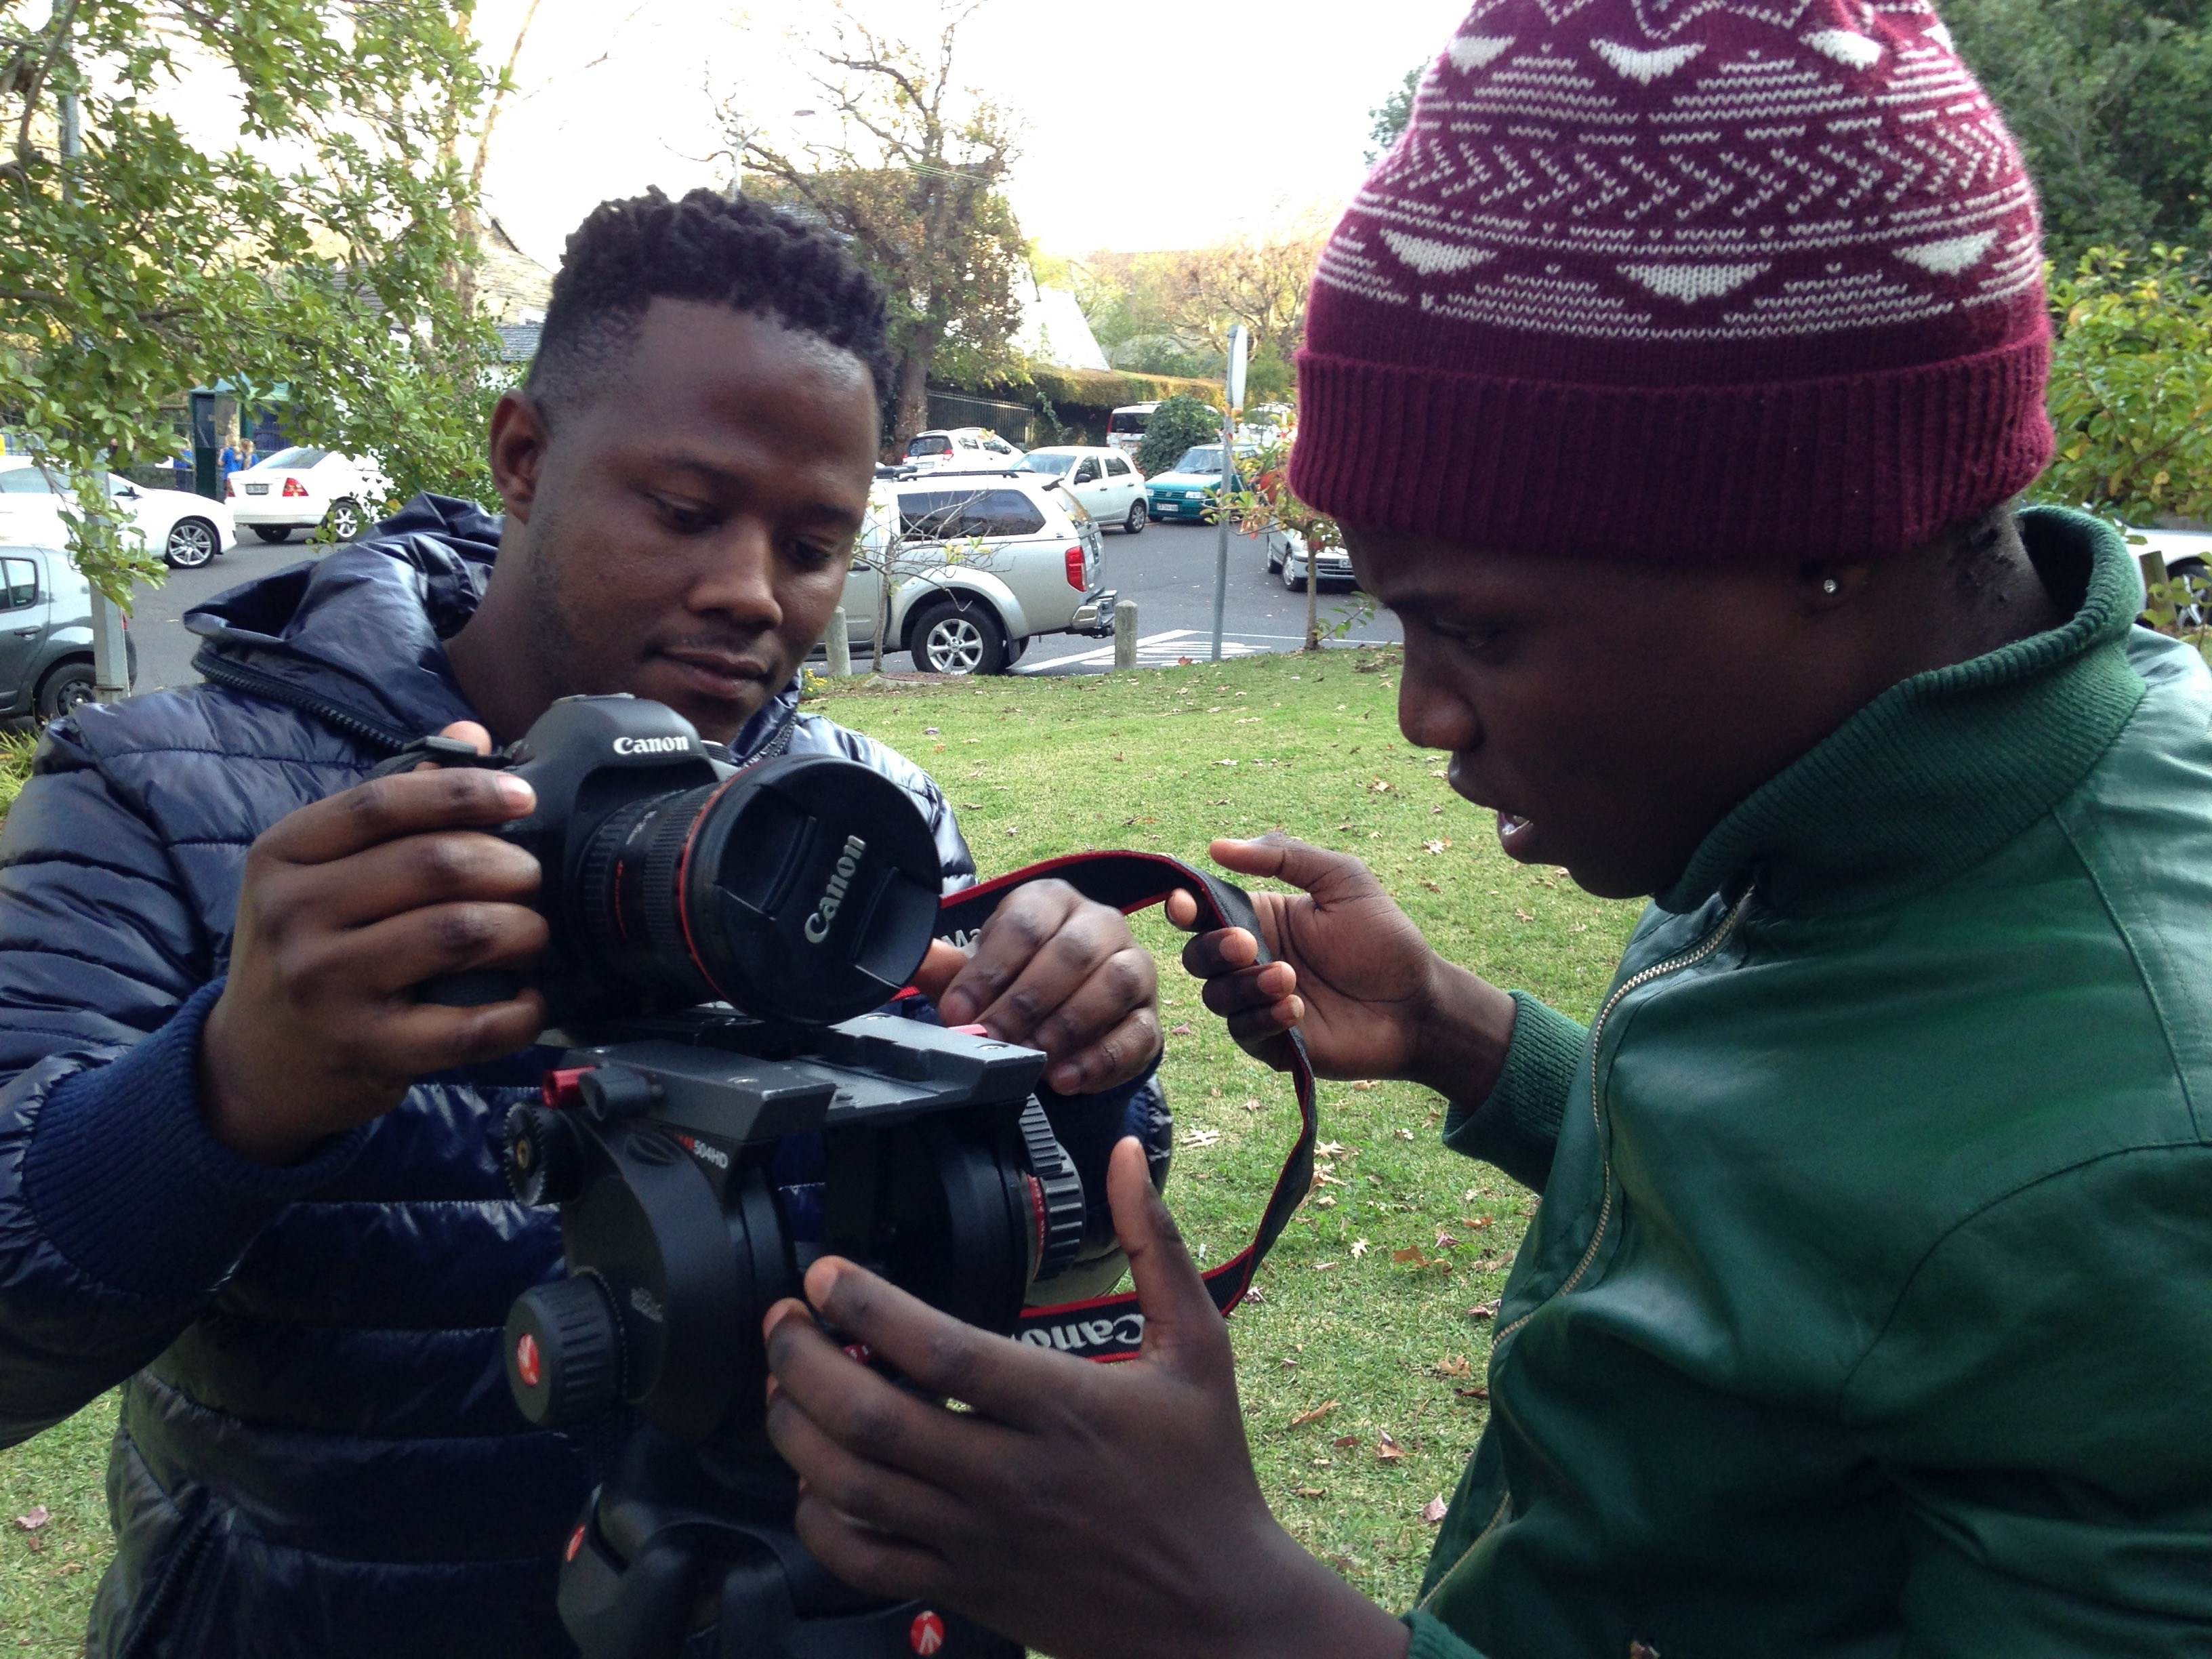 Changing the Story: Activist Filmmaking Workshop